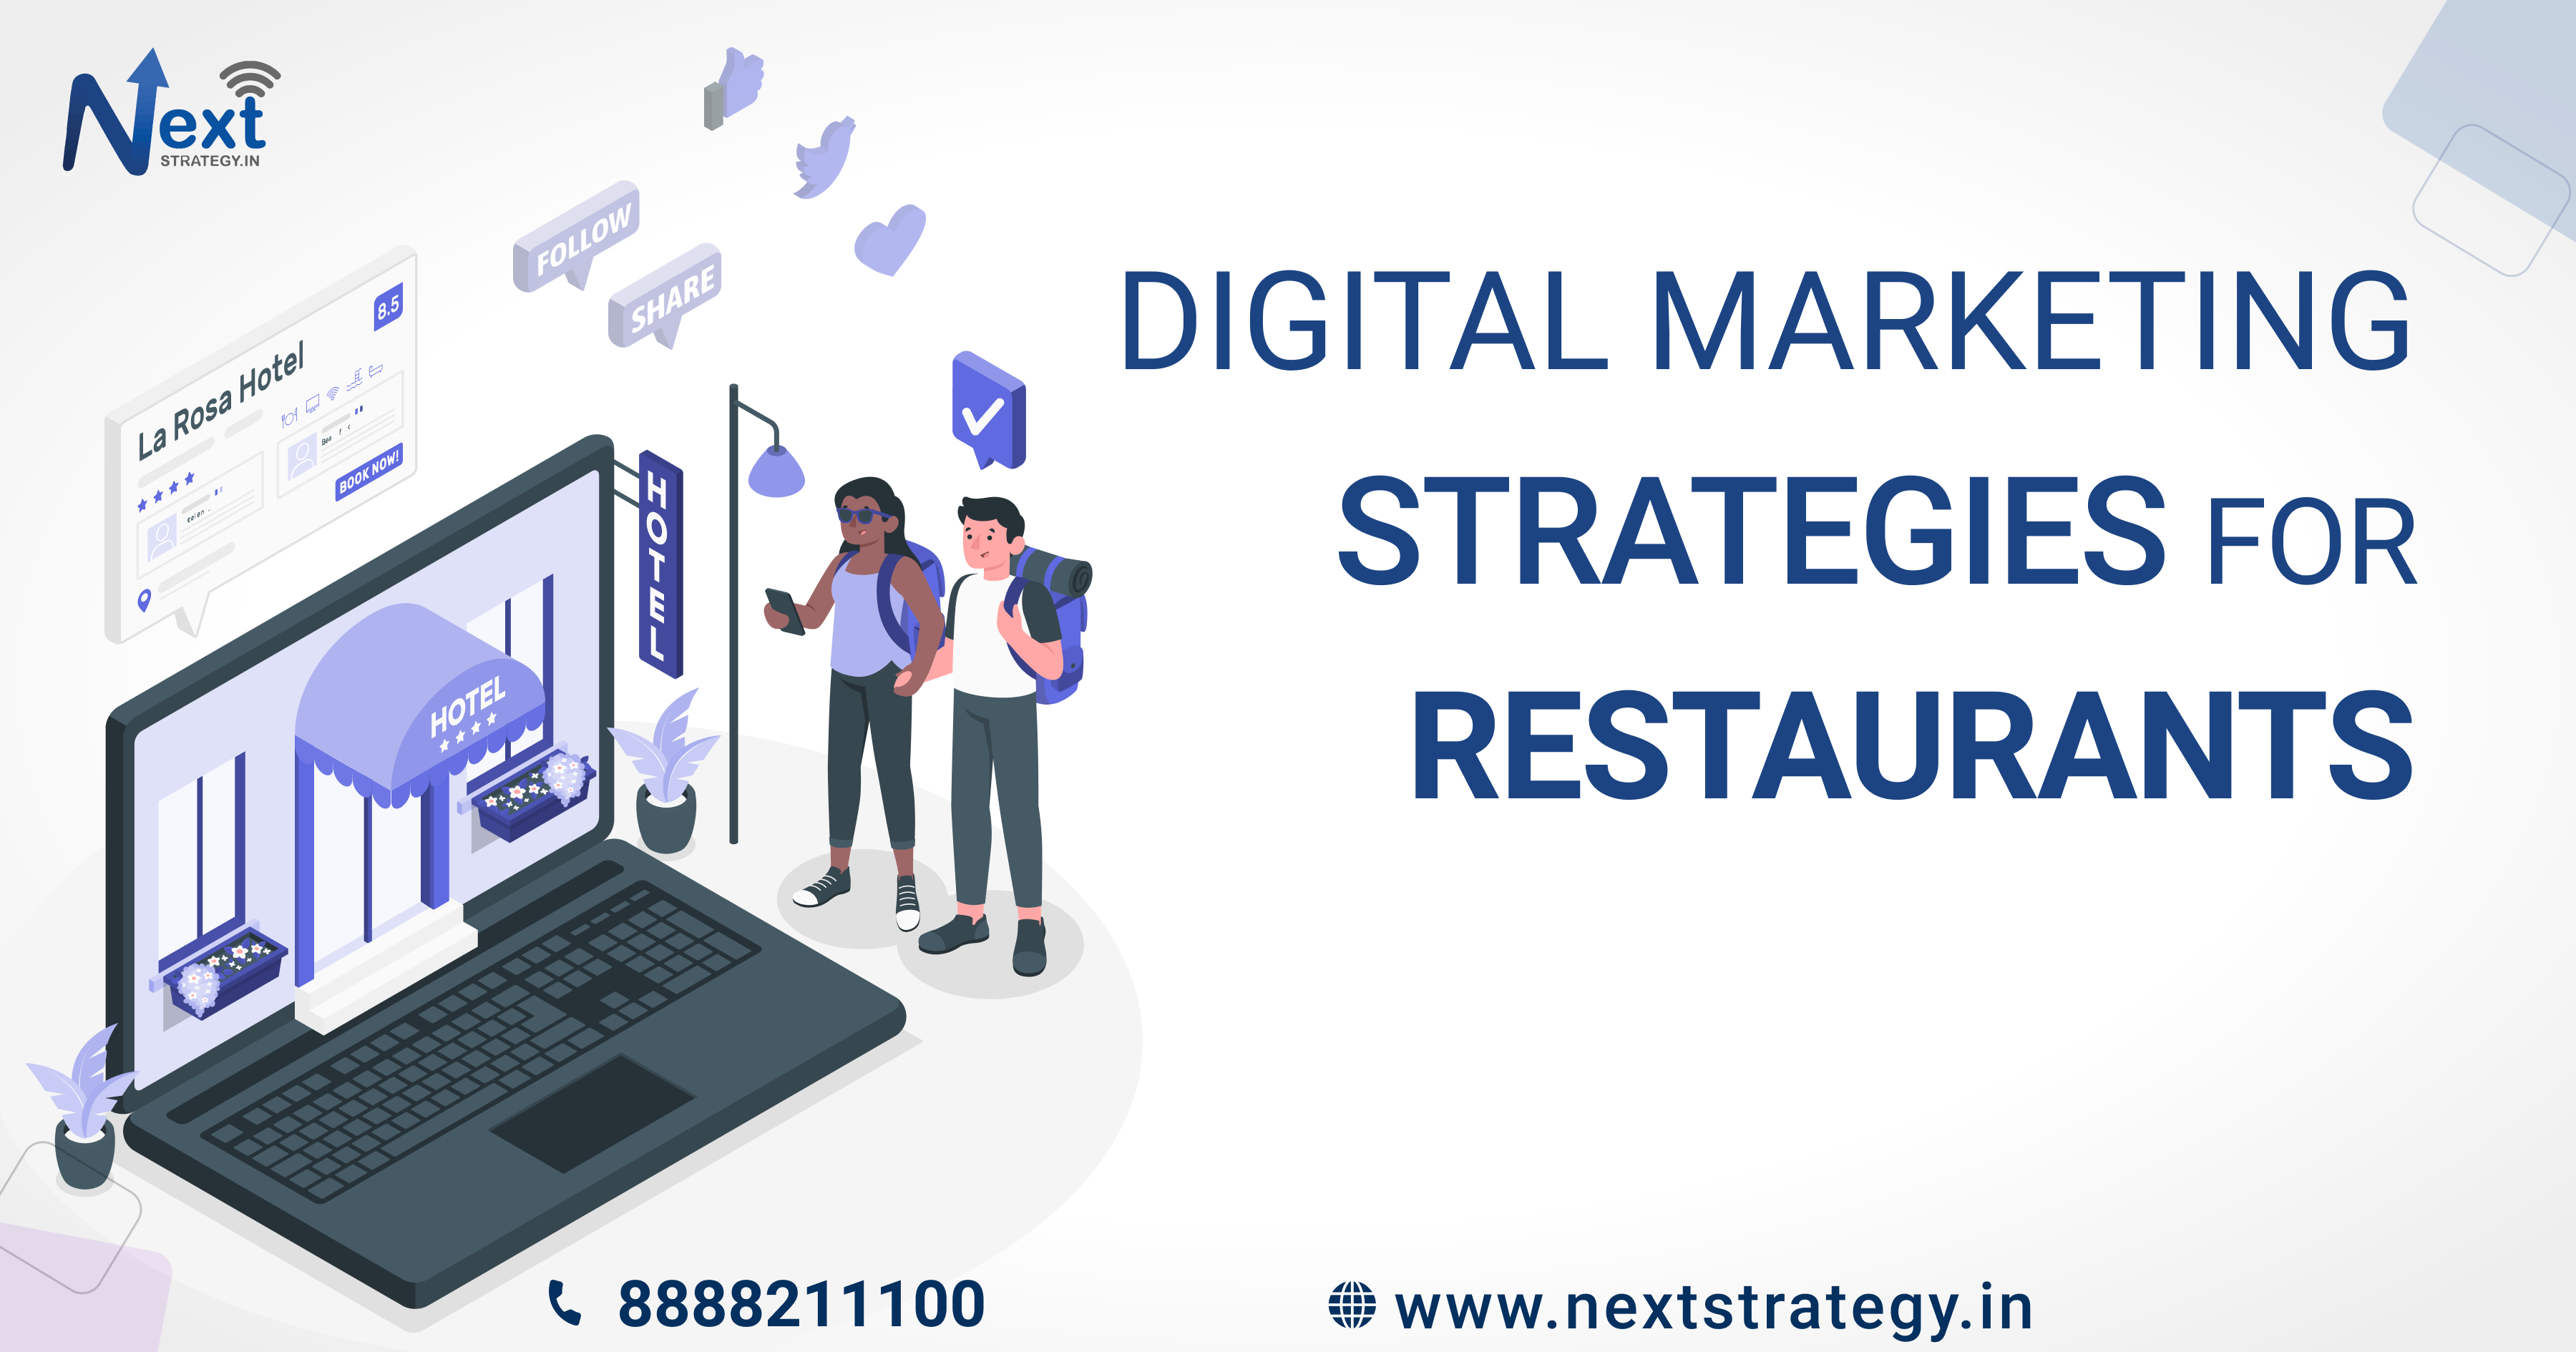 DIGITAL-MARKETING-STRATEGIES-FOR-RESTAURANTS